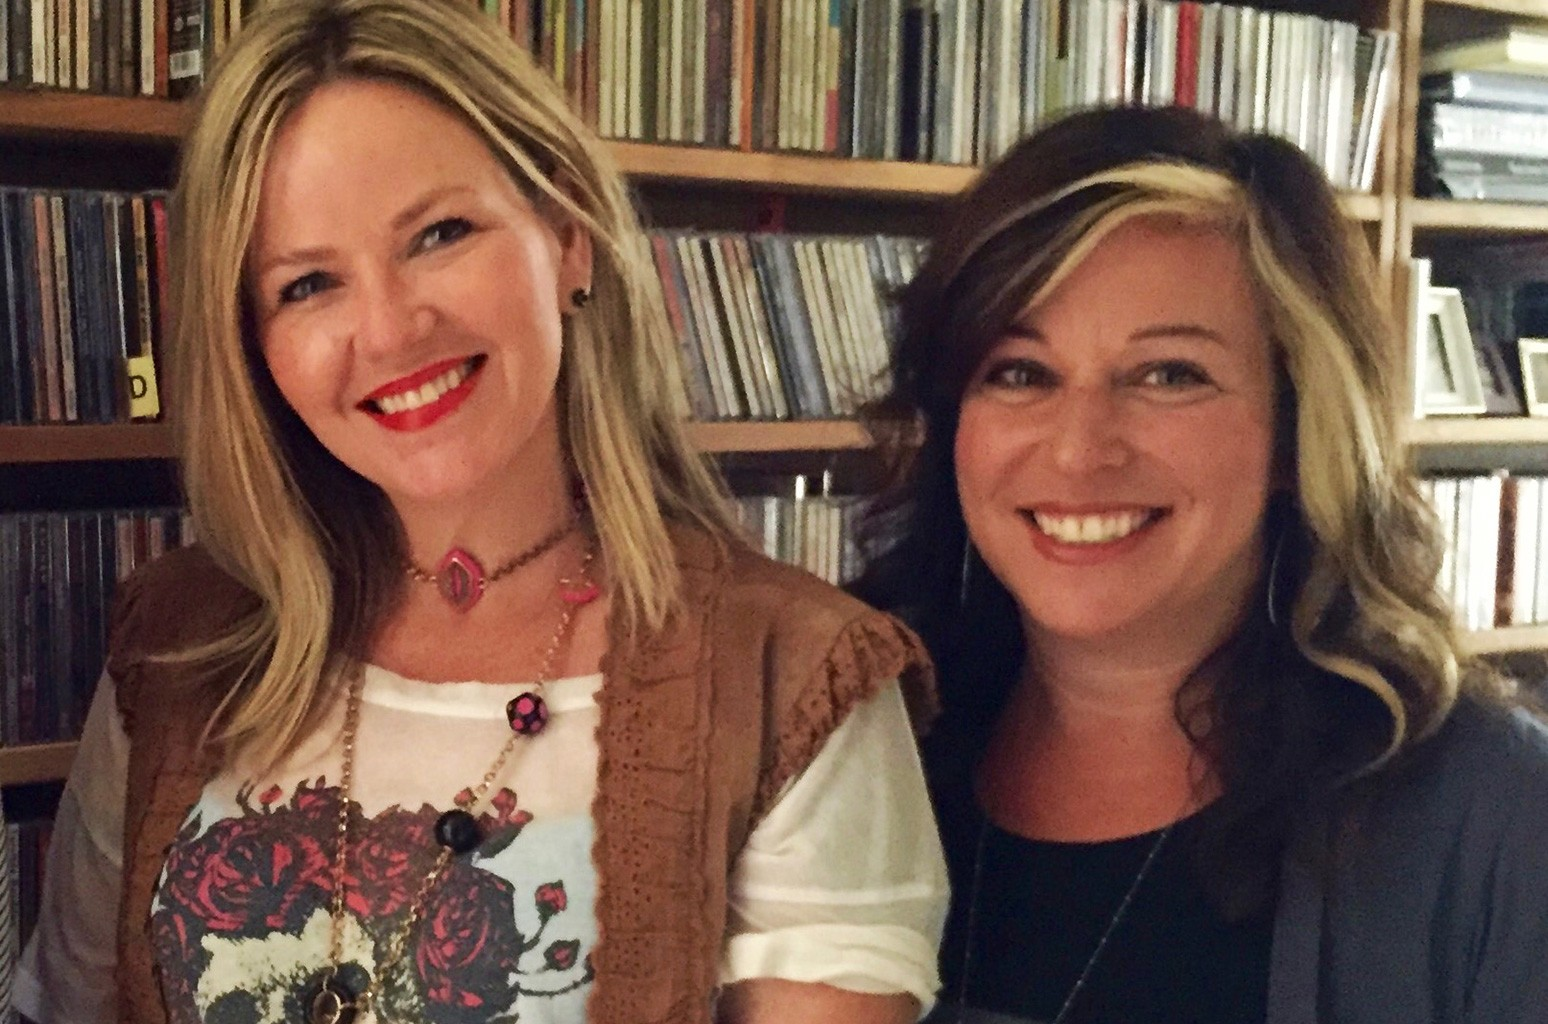 Kay Hanley and Michelle Lewis